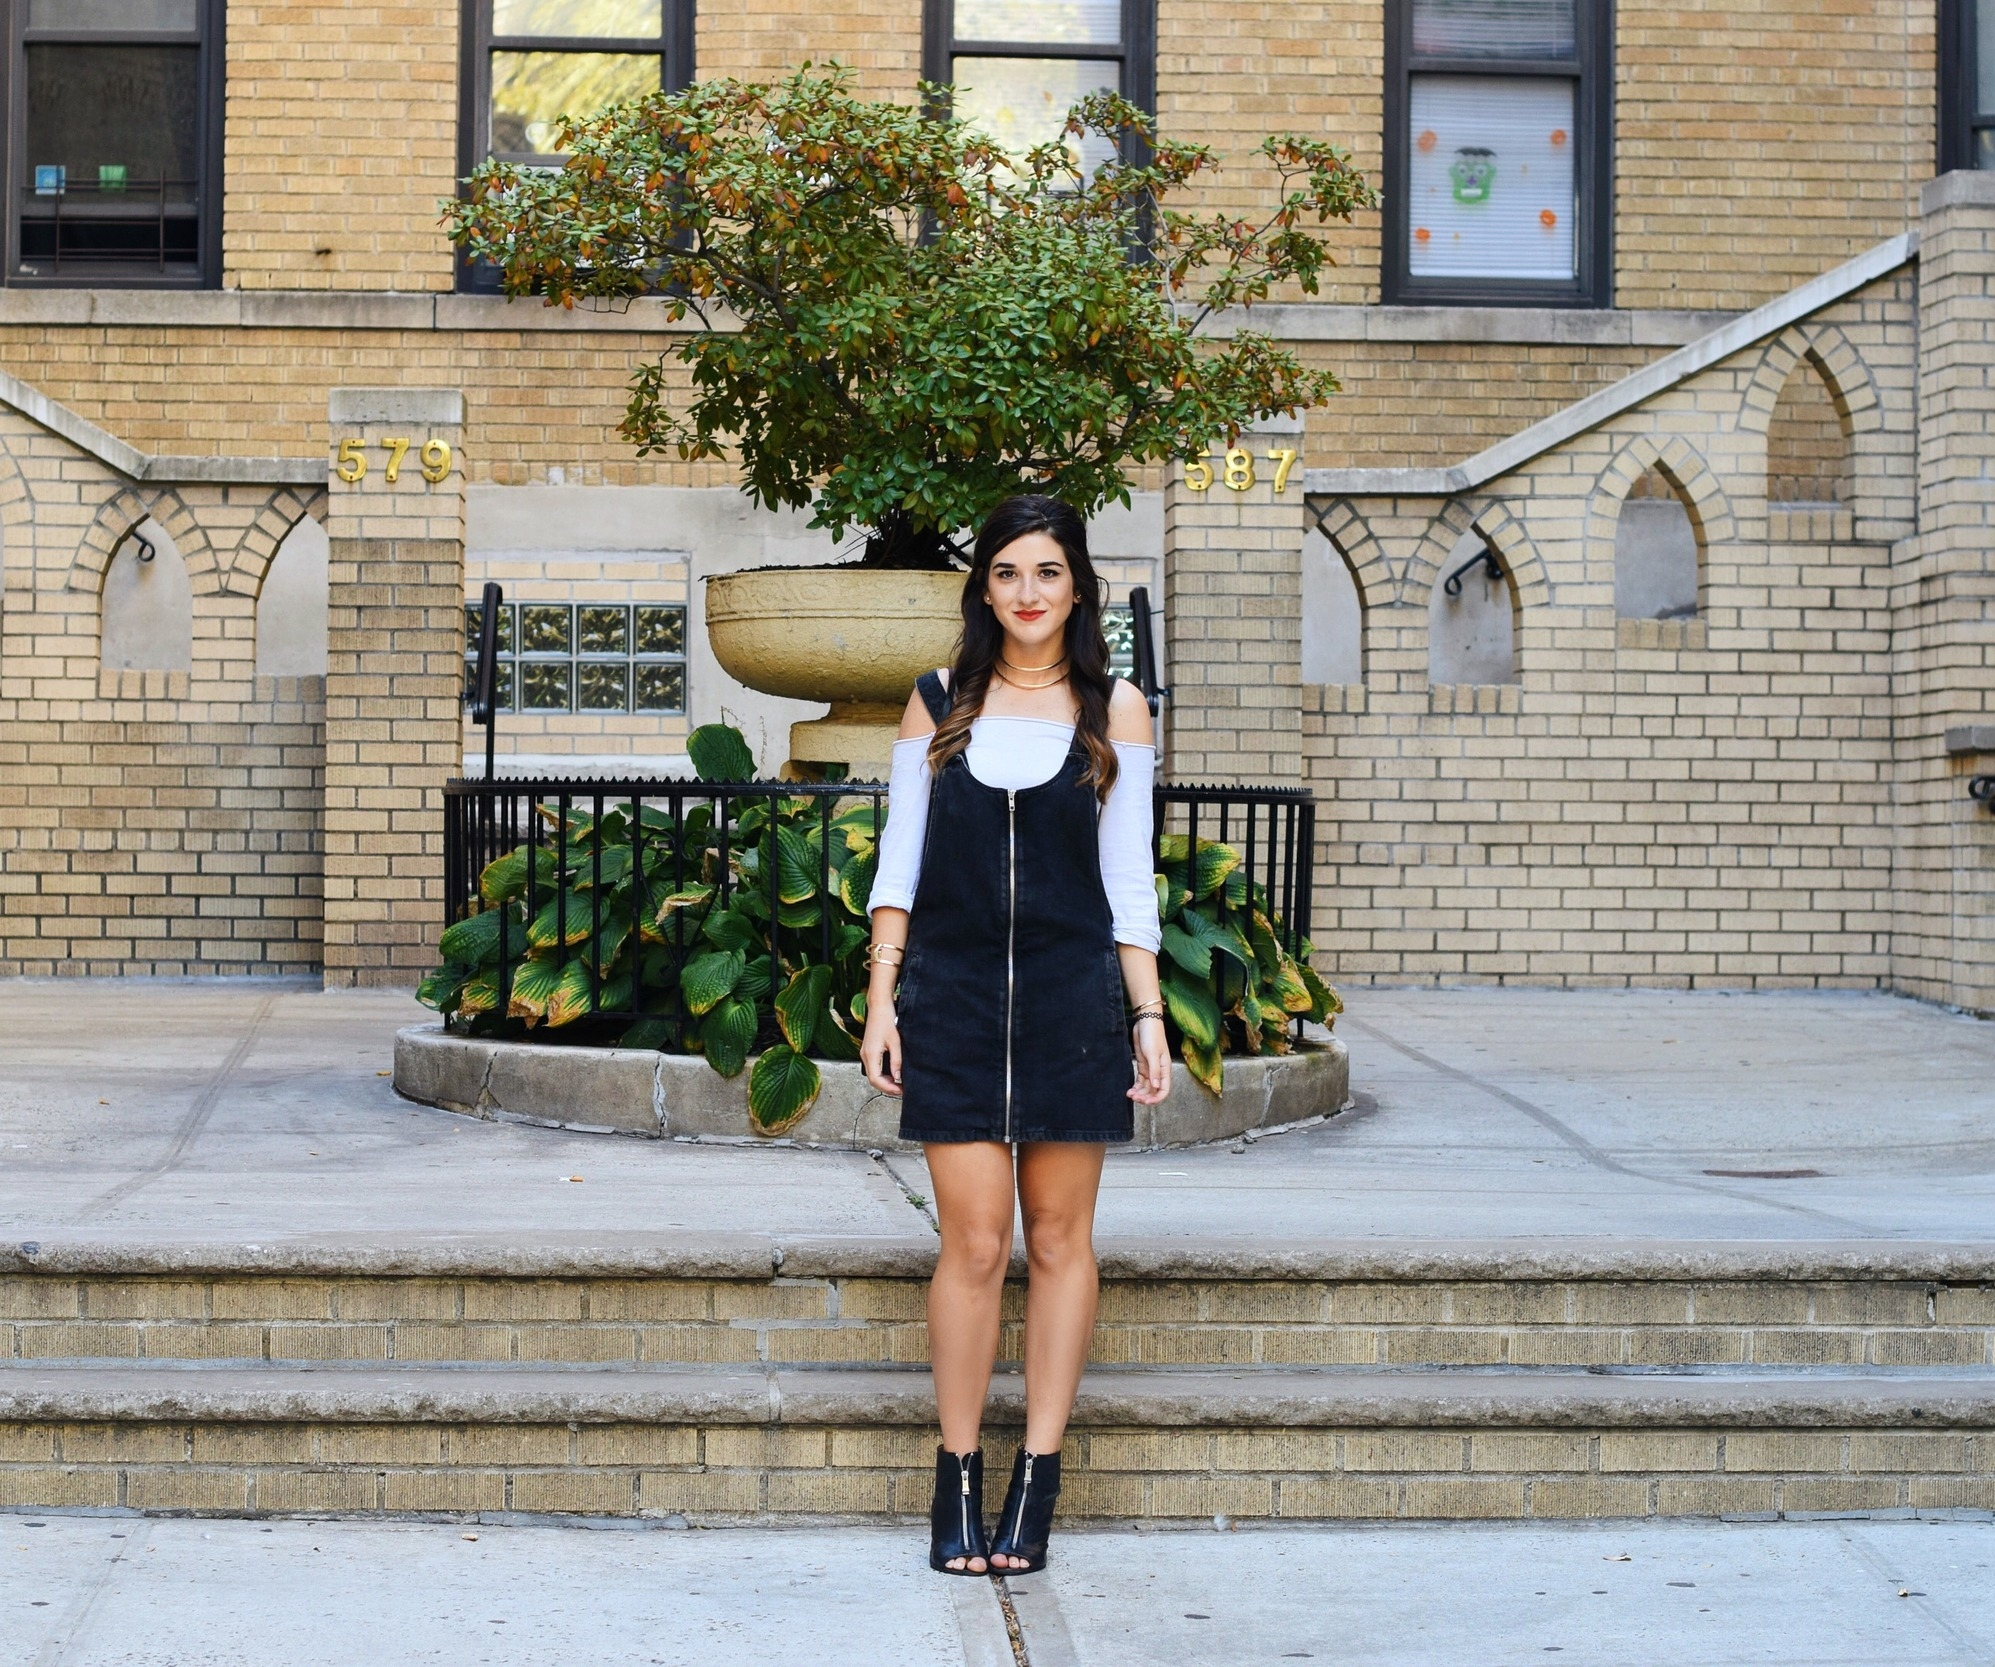 Jean Dress Overalls Off The Shoulder Top Louboutins & Love Fashion Blog Esther Santer Street Style NYC Hair Box Clutch Shoes Denim Gold Jewelry Model Girl Women Zara Trendy OOTD Outfit Bag Collar Necklace Inspo Shop Fall Zipper Black Booties Nordstrom.JPG